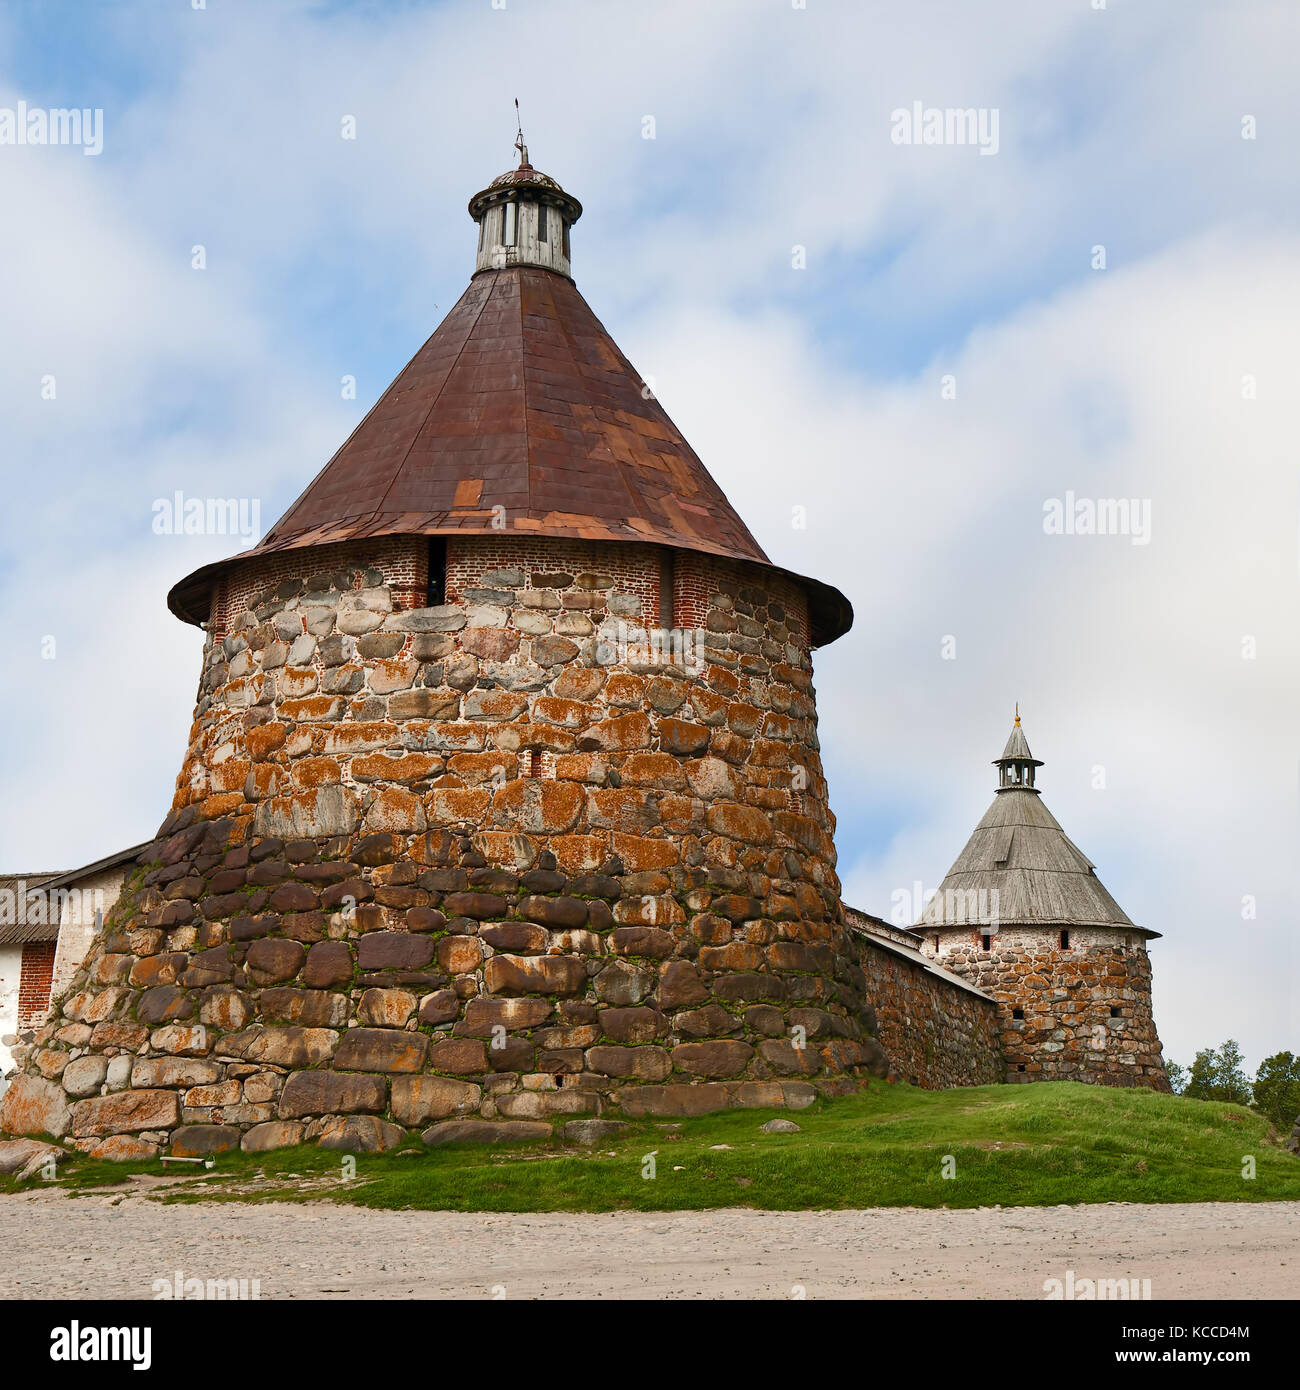 The towers of the Solovetsky monastery, Solovetsky archipelago, Russia Stock Photo